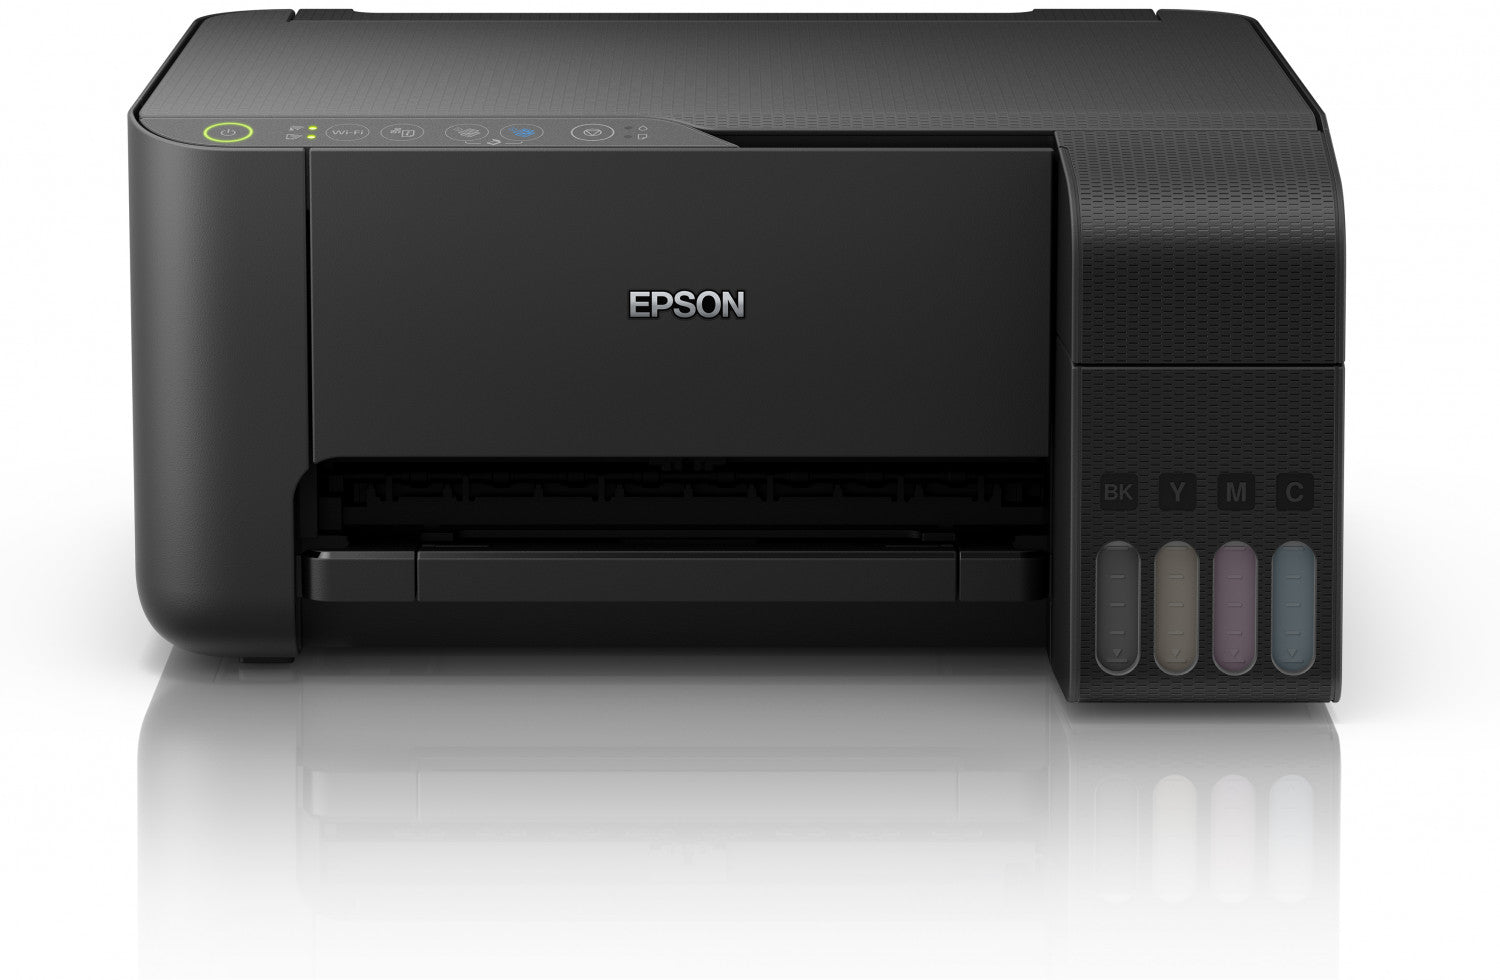 EPSON L3150 ECOTANK ITS 3 IN 1 PRINTER